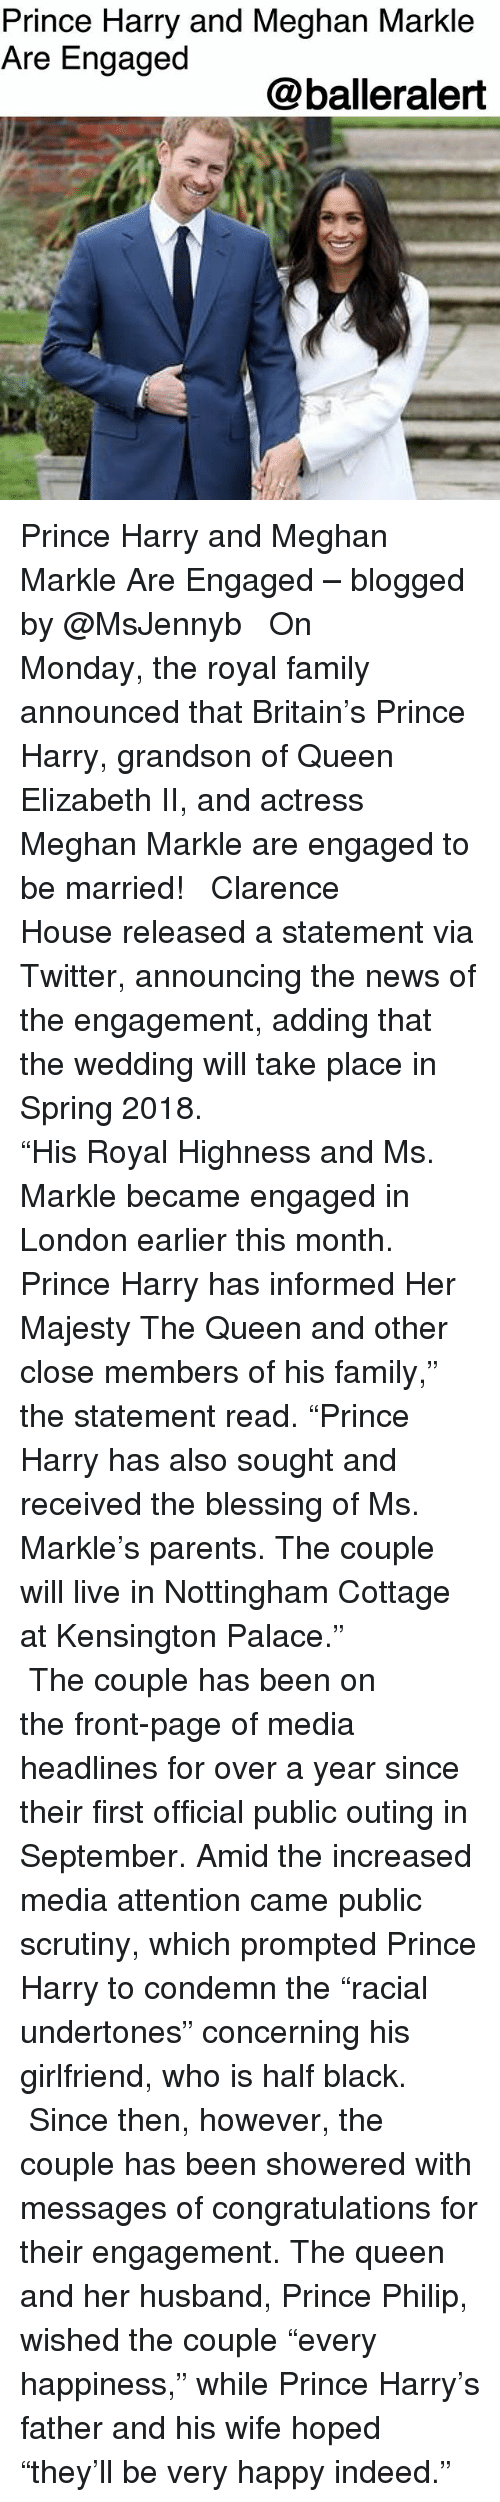 """condemn: Prince Harry and Meghan Markle  Are Engaged  @balleralert Prince Harry and Meghan Markle Are Engaged – blogged by @MsJennyb ⠀⠀⠀⠀⠀⠀⠀ ⠀⠀⠀⠀⠀⠀⠀ On Monday, the royal family announced that Britain's Prince Harry, grandson of Queen Elizabeth II, and actress Meghan Markle are engaged to be married! ⠀⠀⠀⠀⠀⠀⠀ ⠀⠀⠀⠀⠀⠀⠀ Clarence House released a statement via Twitter, announcing the news of the engagement, adding that the wedding will take place in Spring 2018. ⠀⠀⠀⠀⠀⠀⠀ ⠀⠀⠀⠀⠀⠀⠀ ⠀⠀⠀⠀⠀⠀⠀ """"His Royal Highness and Ms. Markle became engaged in London earlier this month. Prince Harry has informed Her Majesty The Queen and other close members of his family,"""" the statement read. """"Prince Harry has also sought and received the blessing of Ms. Markle's parents. The couple will live in Nottingham Cottage at Kensington Palace."""" ⠀⠀⠀⠀⠀⠀⠀ ⠀⠀⠀⠀⠀⠀⠀ The couple has been on the front-page of media headlines for over a year since their first official public outing in September. Amid the increased media attention came public scrutiny, which prompted Prince Harry to condemn the """"racial undertones"""" concerning his girlfriend, who is half black. ⠀⠀⠀⠀⠀⠀⠀ ⠀⠀⠀⠀⠀⠀⠀ Since then, however, the couple has been showered with messages of congratulations for their engagement. The queen and her husband, Prince Philip, wished the couple """"every happiness,"""" while Prince Harry's father and his wife hoped """"they'll be very happy indeed."""""""